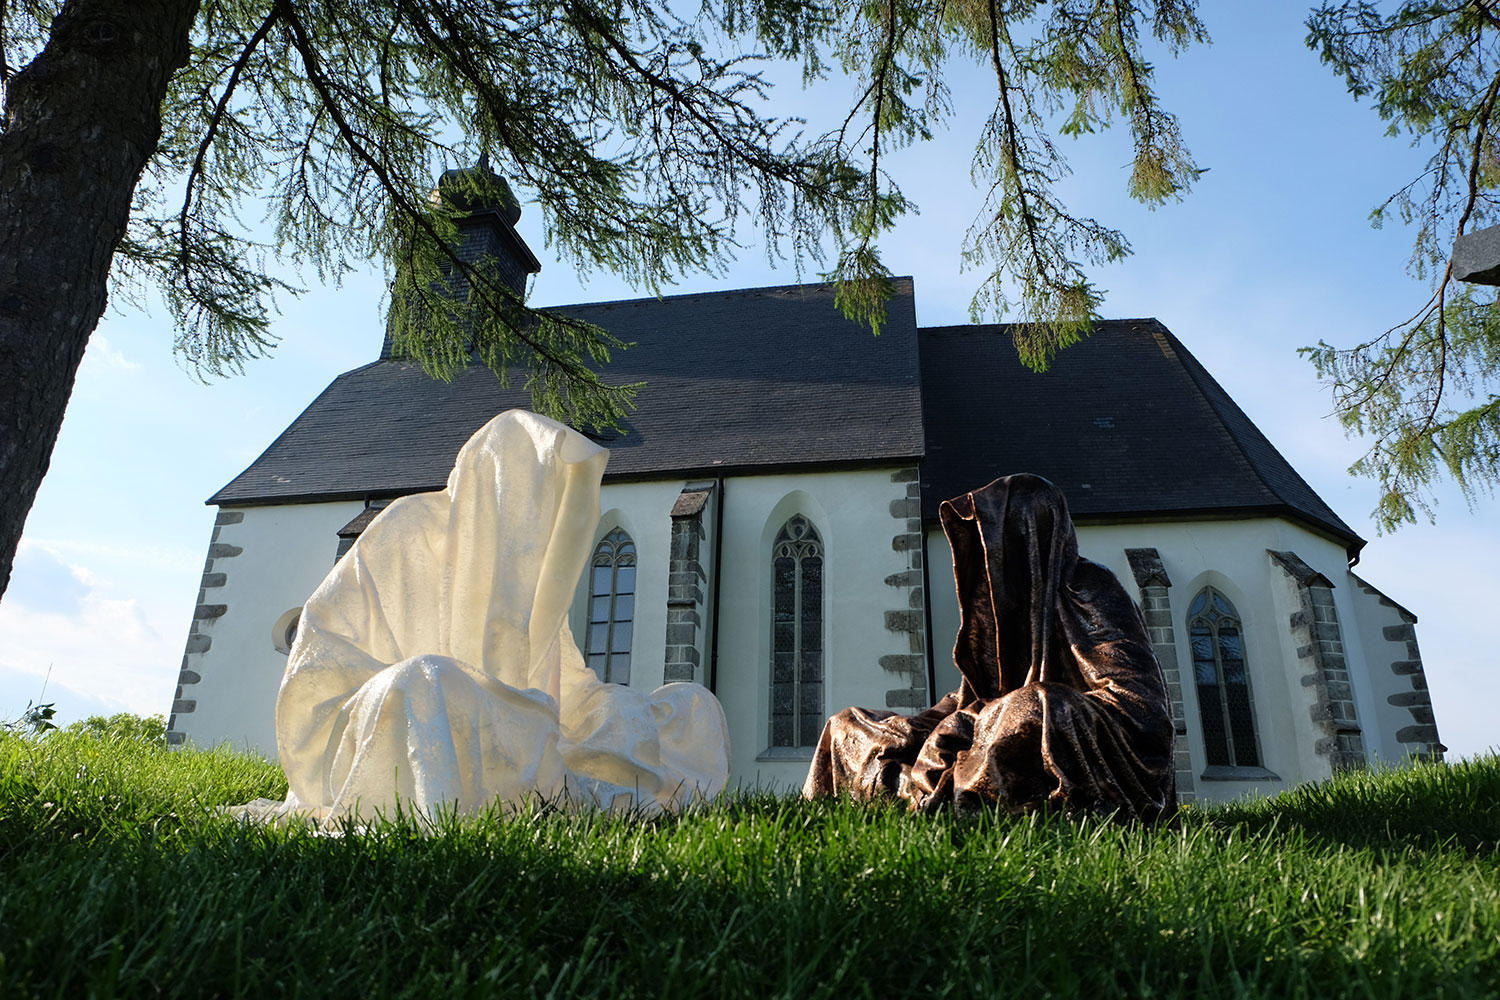 guardians-of-time-manfred-kili-kielnhofer-contemporary-fine-art-design-sculpture-antique-religion-chirch-gotic-2580